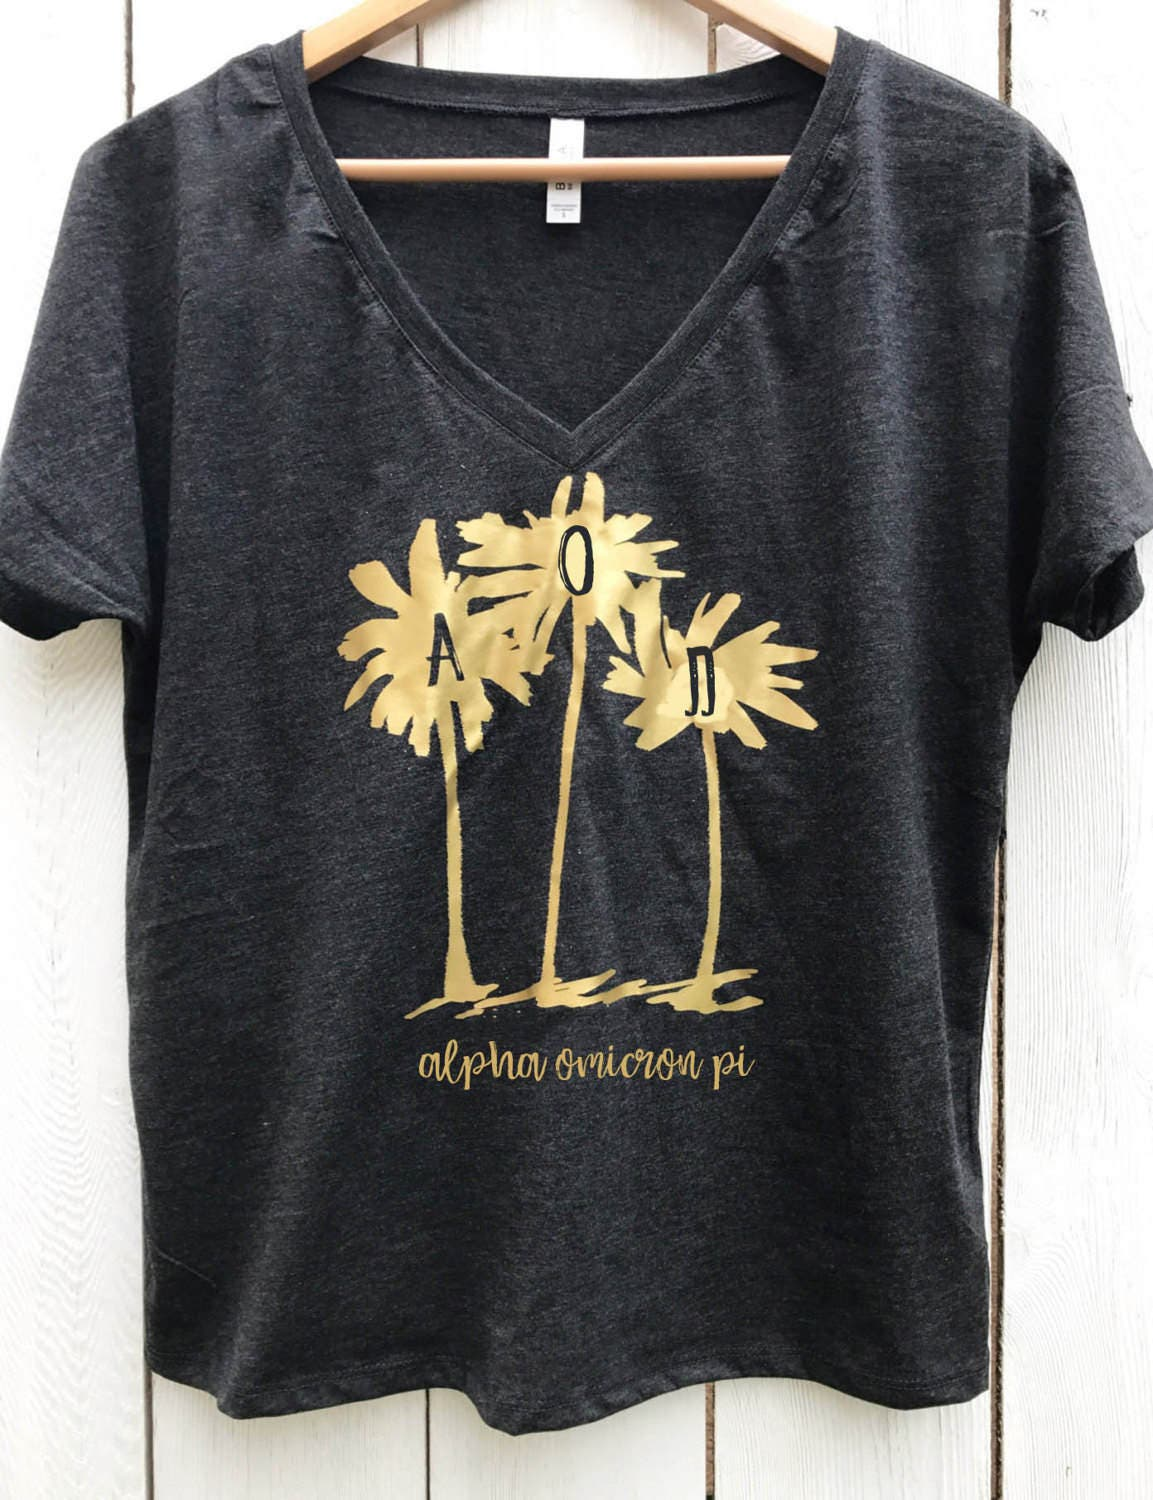 Alpha Omicron Pi Slounchy Palm Tree Tee with AOII greek letters Gold Metallic design